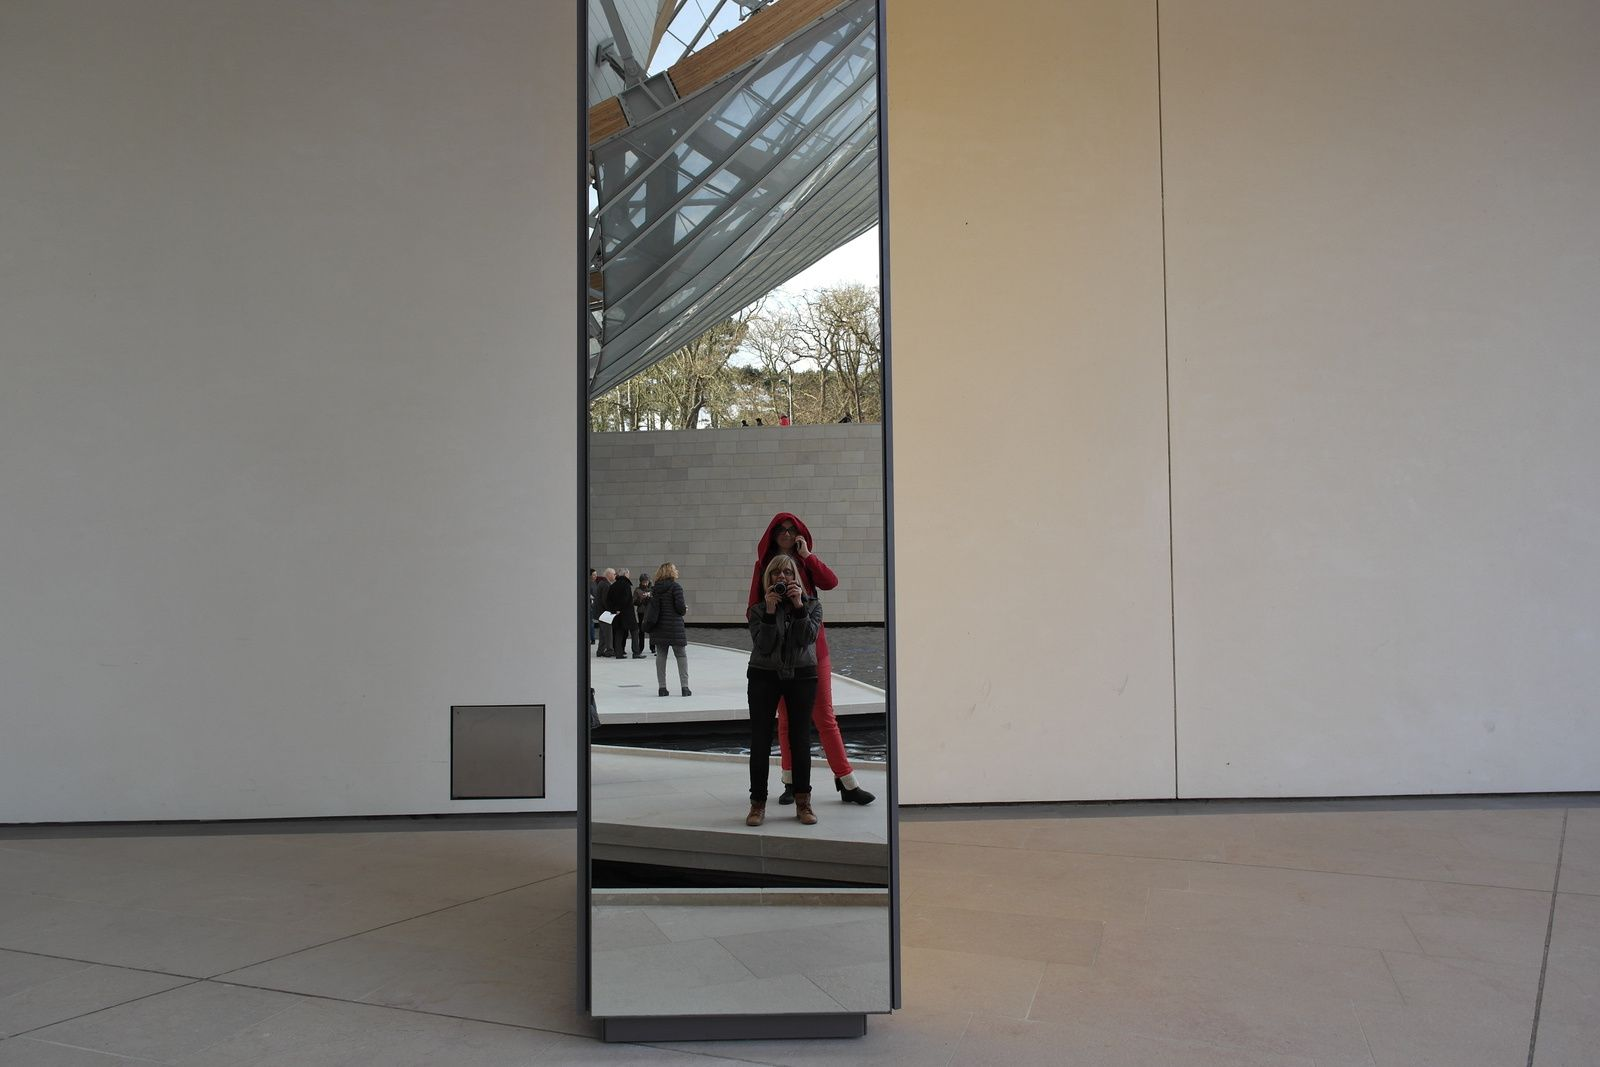 LA FONDATION LOUIS VUITTON (06/03/2015)